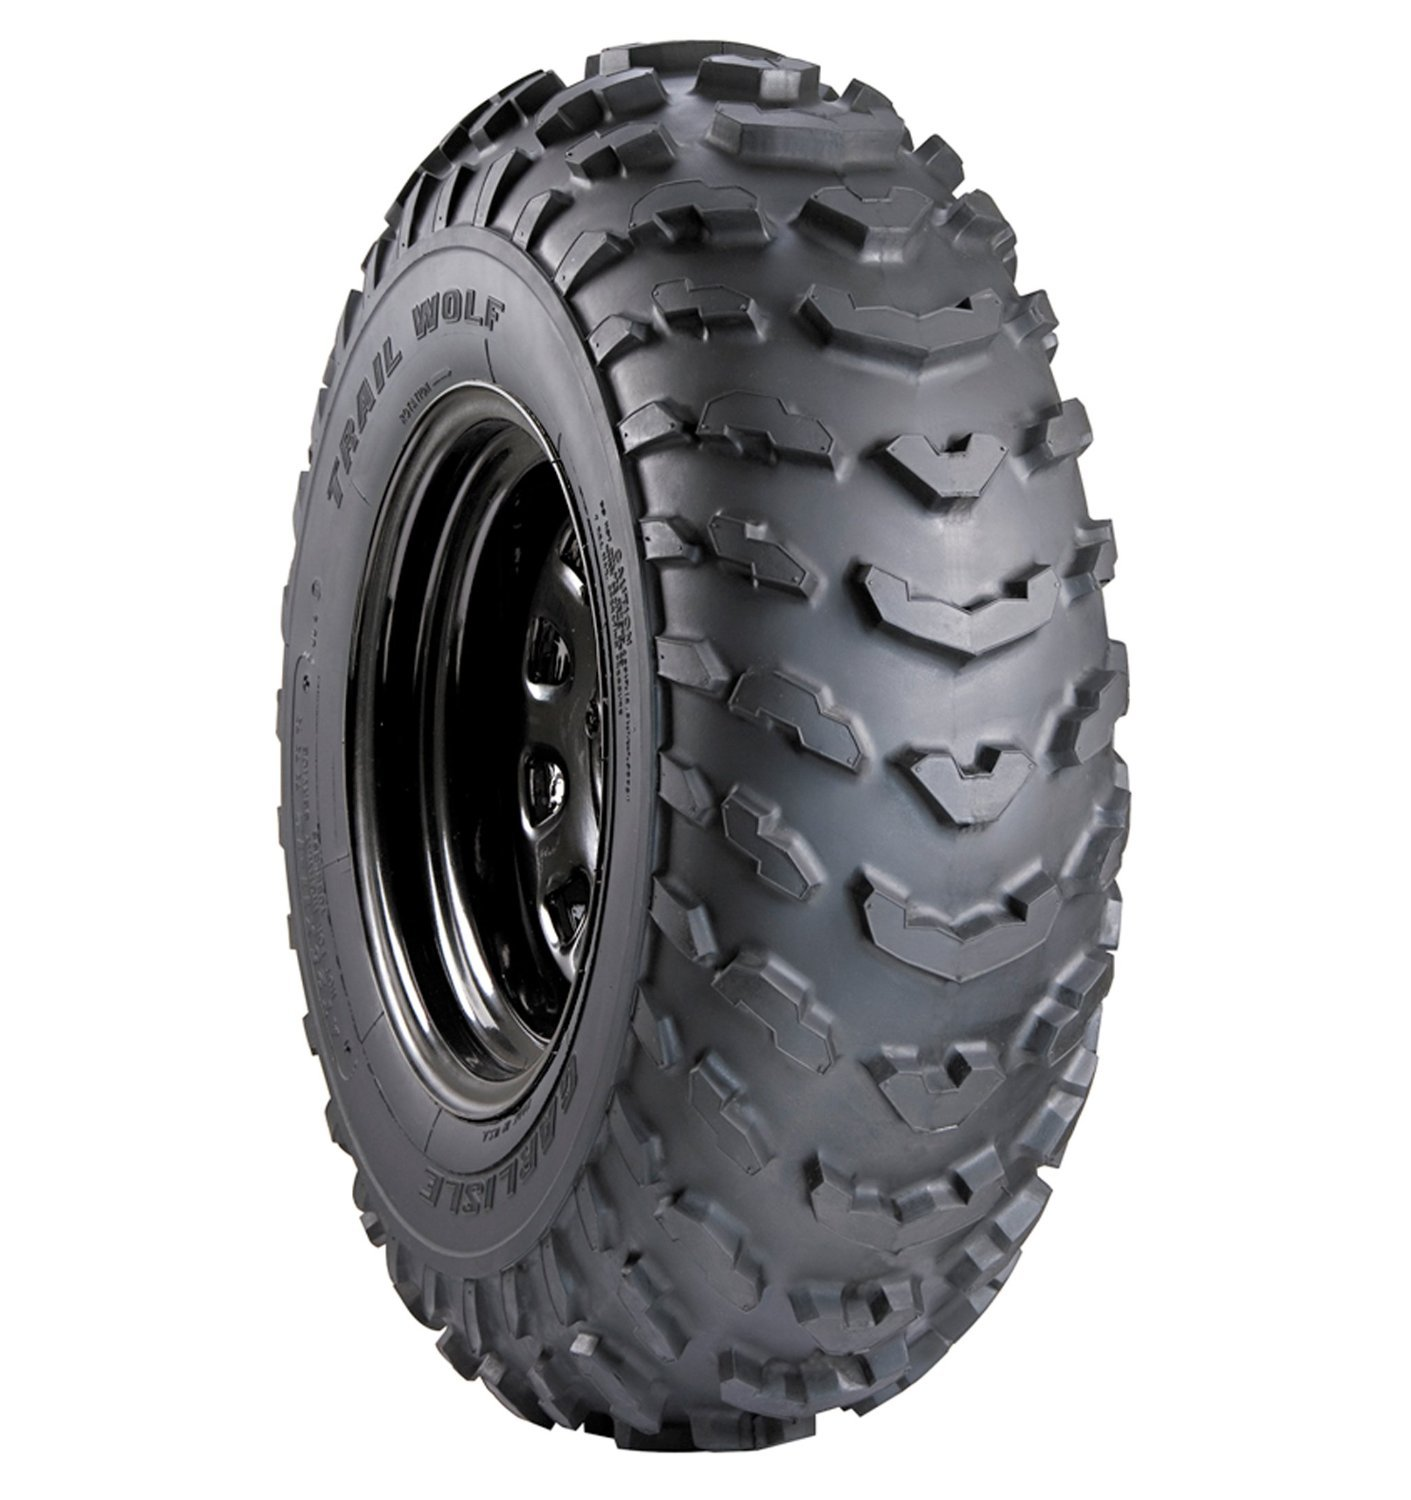 Carlisle Trail Wolf ATV Tire - 22X7-11